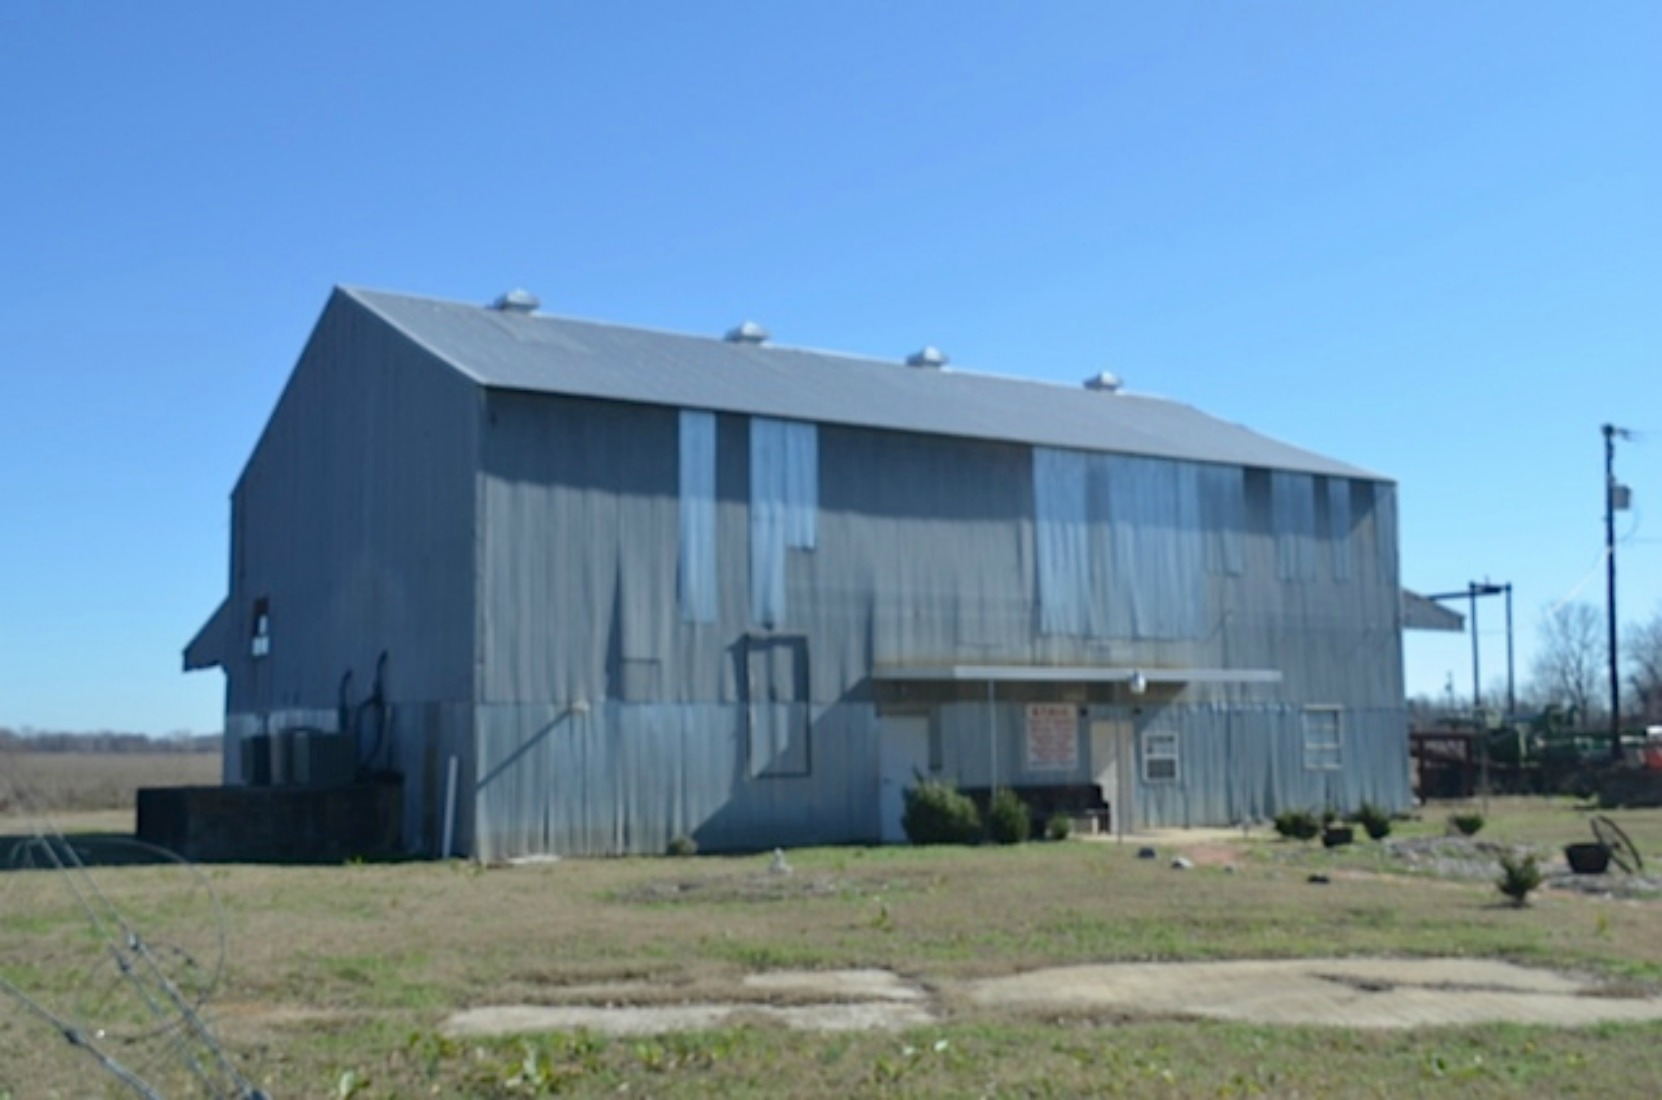 Glendora Gin building, now the site of the Emmett Till Historic Intrepid Centre, near the site of the former house of J.W. Milam, one of the two men who murdered Emmett Till in August 1955, Glendora, Mississippi (courtesy of Keith Petersen)